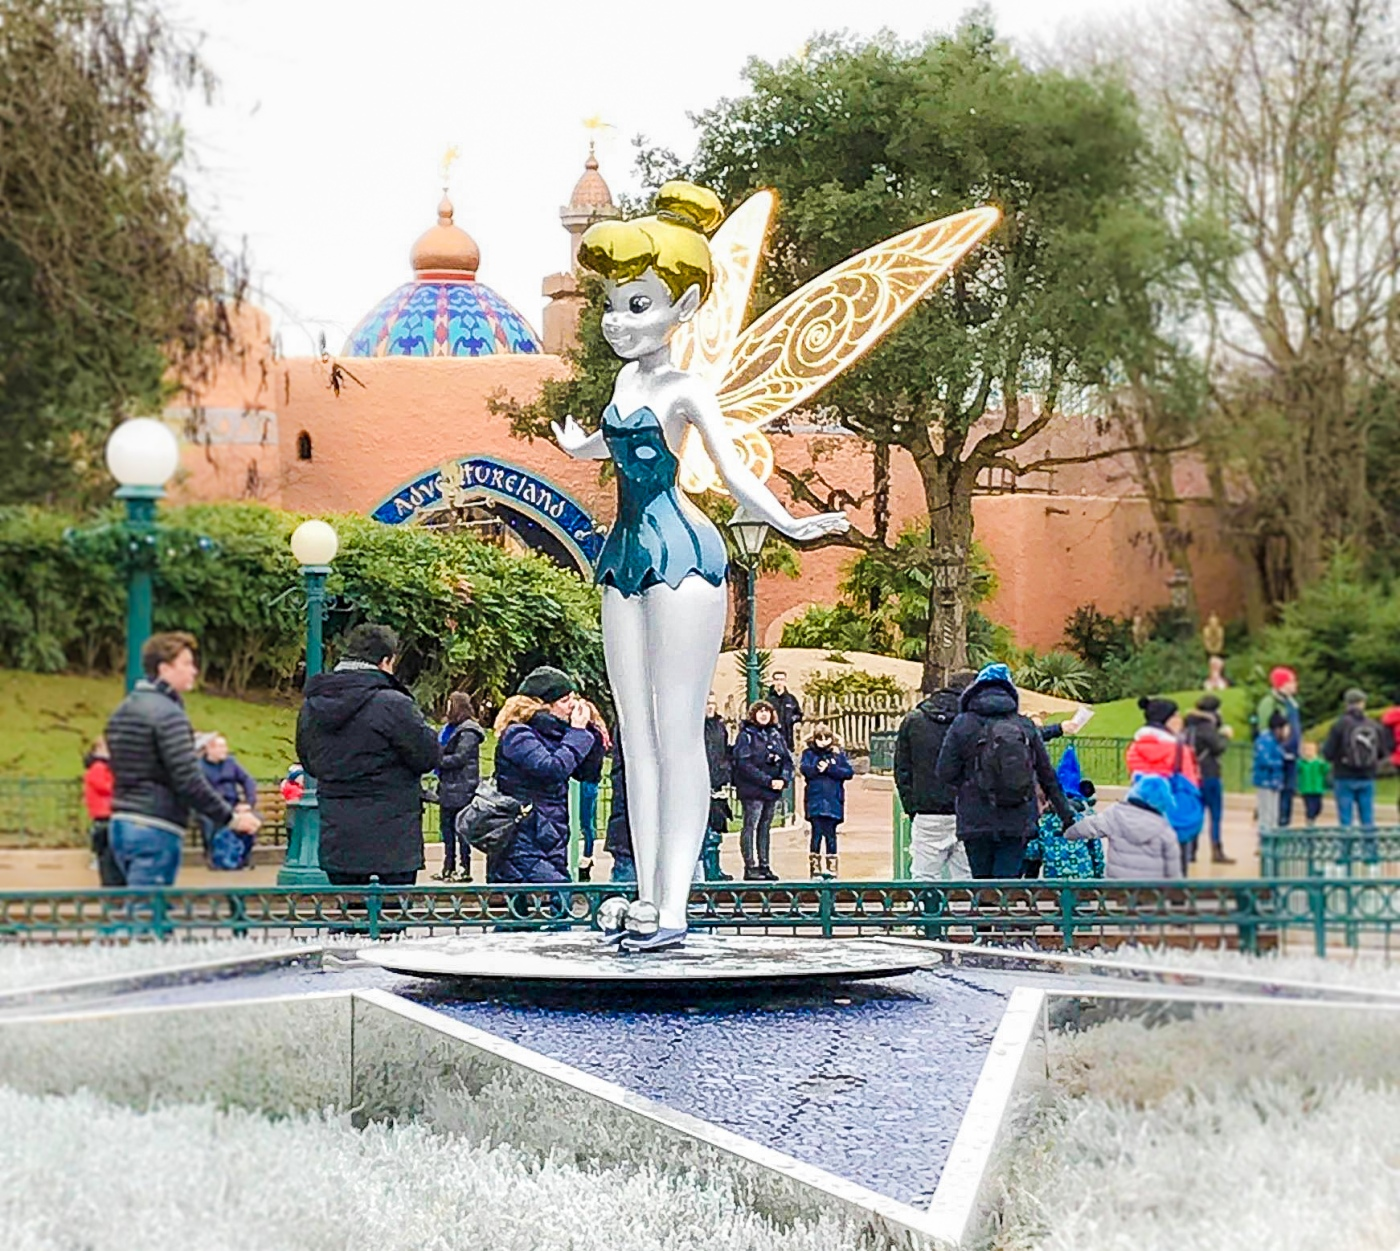 Silver, gold and blue Tinkerbell statue in the Magic Kingdom just before you reach Sleeping Beauty's castle